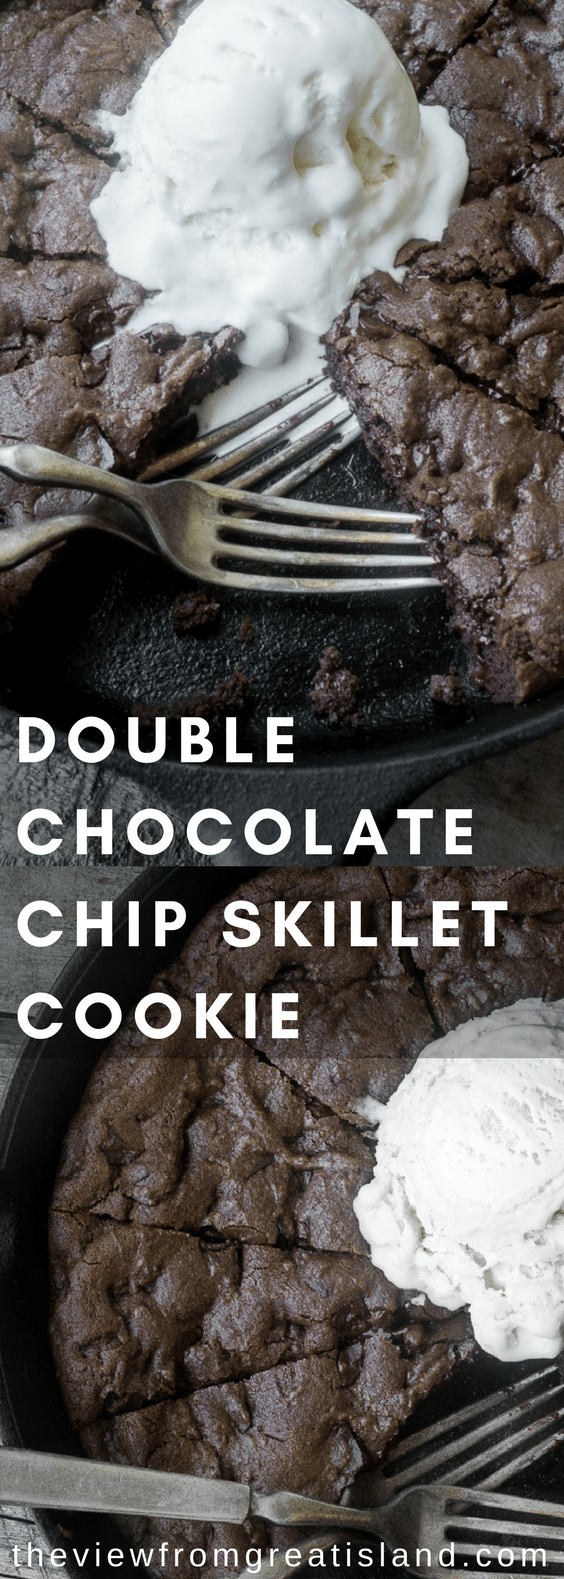 Double Chocolate Chip Skillet Cookie...if those words don't send a little shiver down your spine then you might not be firing on all cylinders...just saying. #skilletcookie #cookiepie #chocolatechip #chocolatechipcookie #doublechocolatechipcookie #dessert #chocolate #cookie #cookiepie #doublechocolate